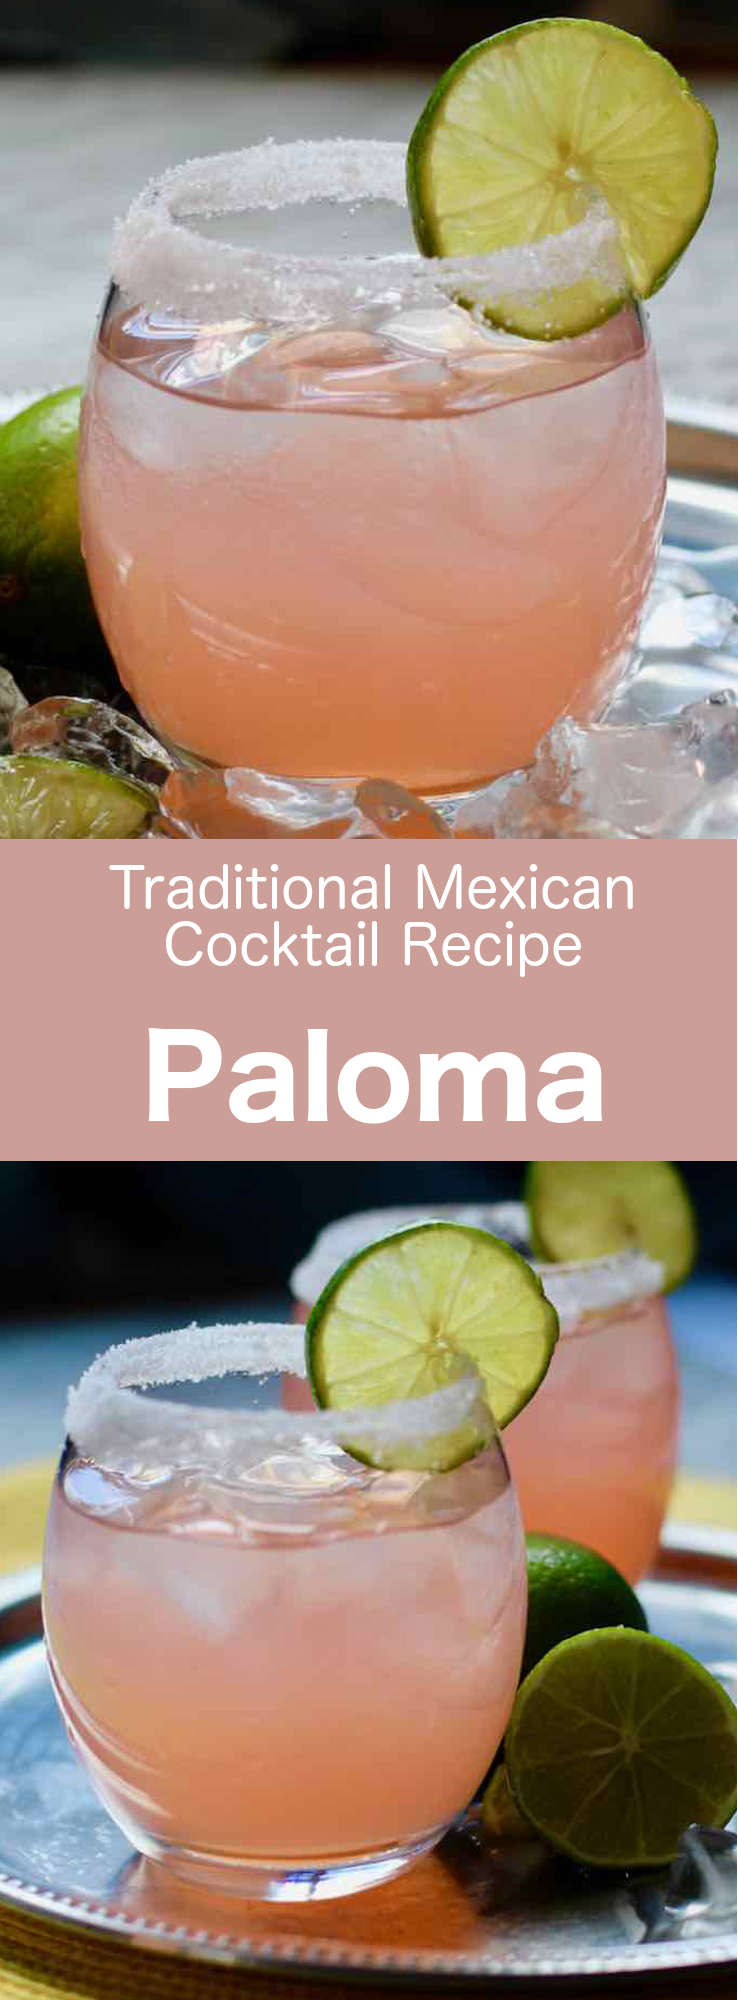 Paloma is a Mexican tequila-based cocktail prepared with grapefruit-flavored soda, that is served on the rocks and with a slice of lime. #Mexican #MexicanDrink #MexicanCocktail #MexicanRecipe #WorldCuisine #196flavors